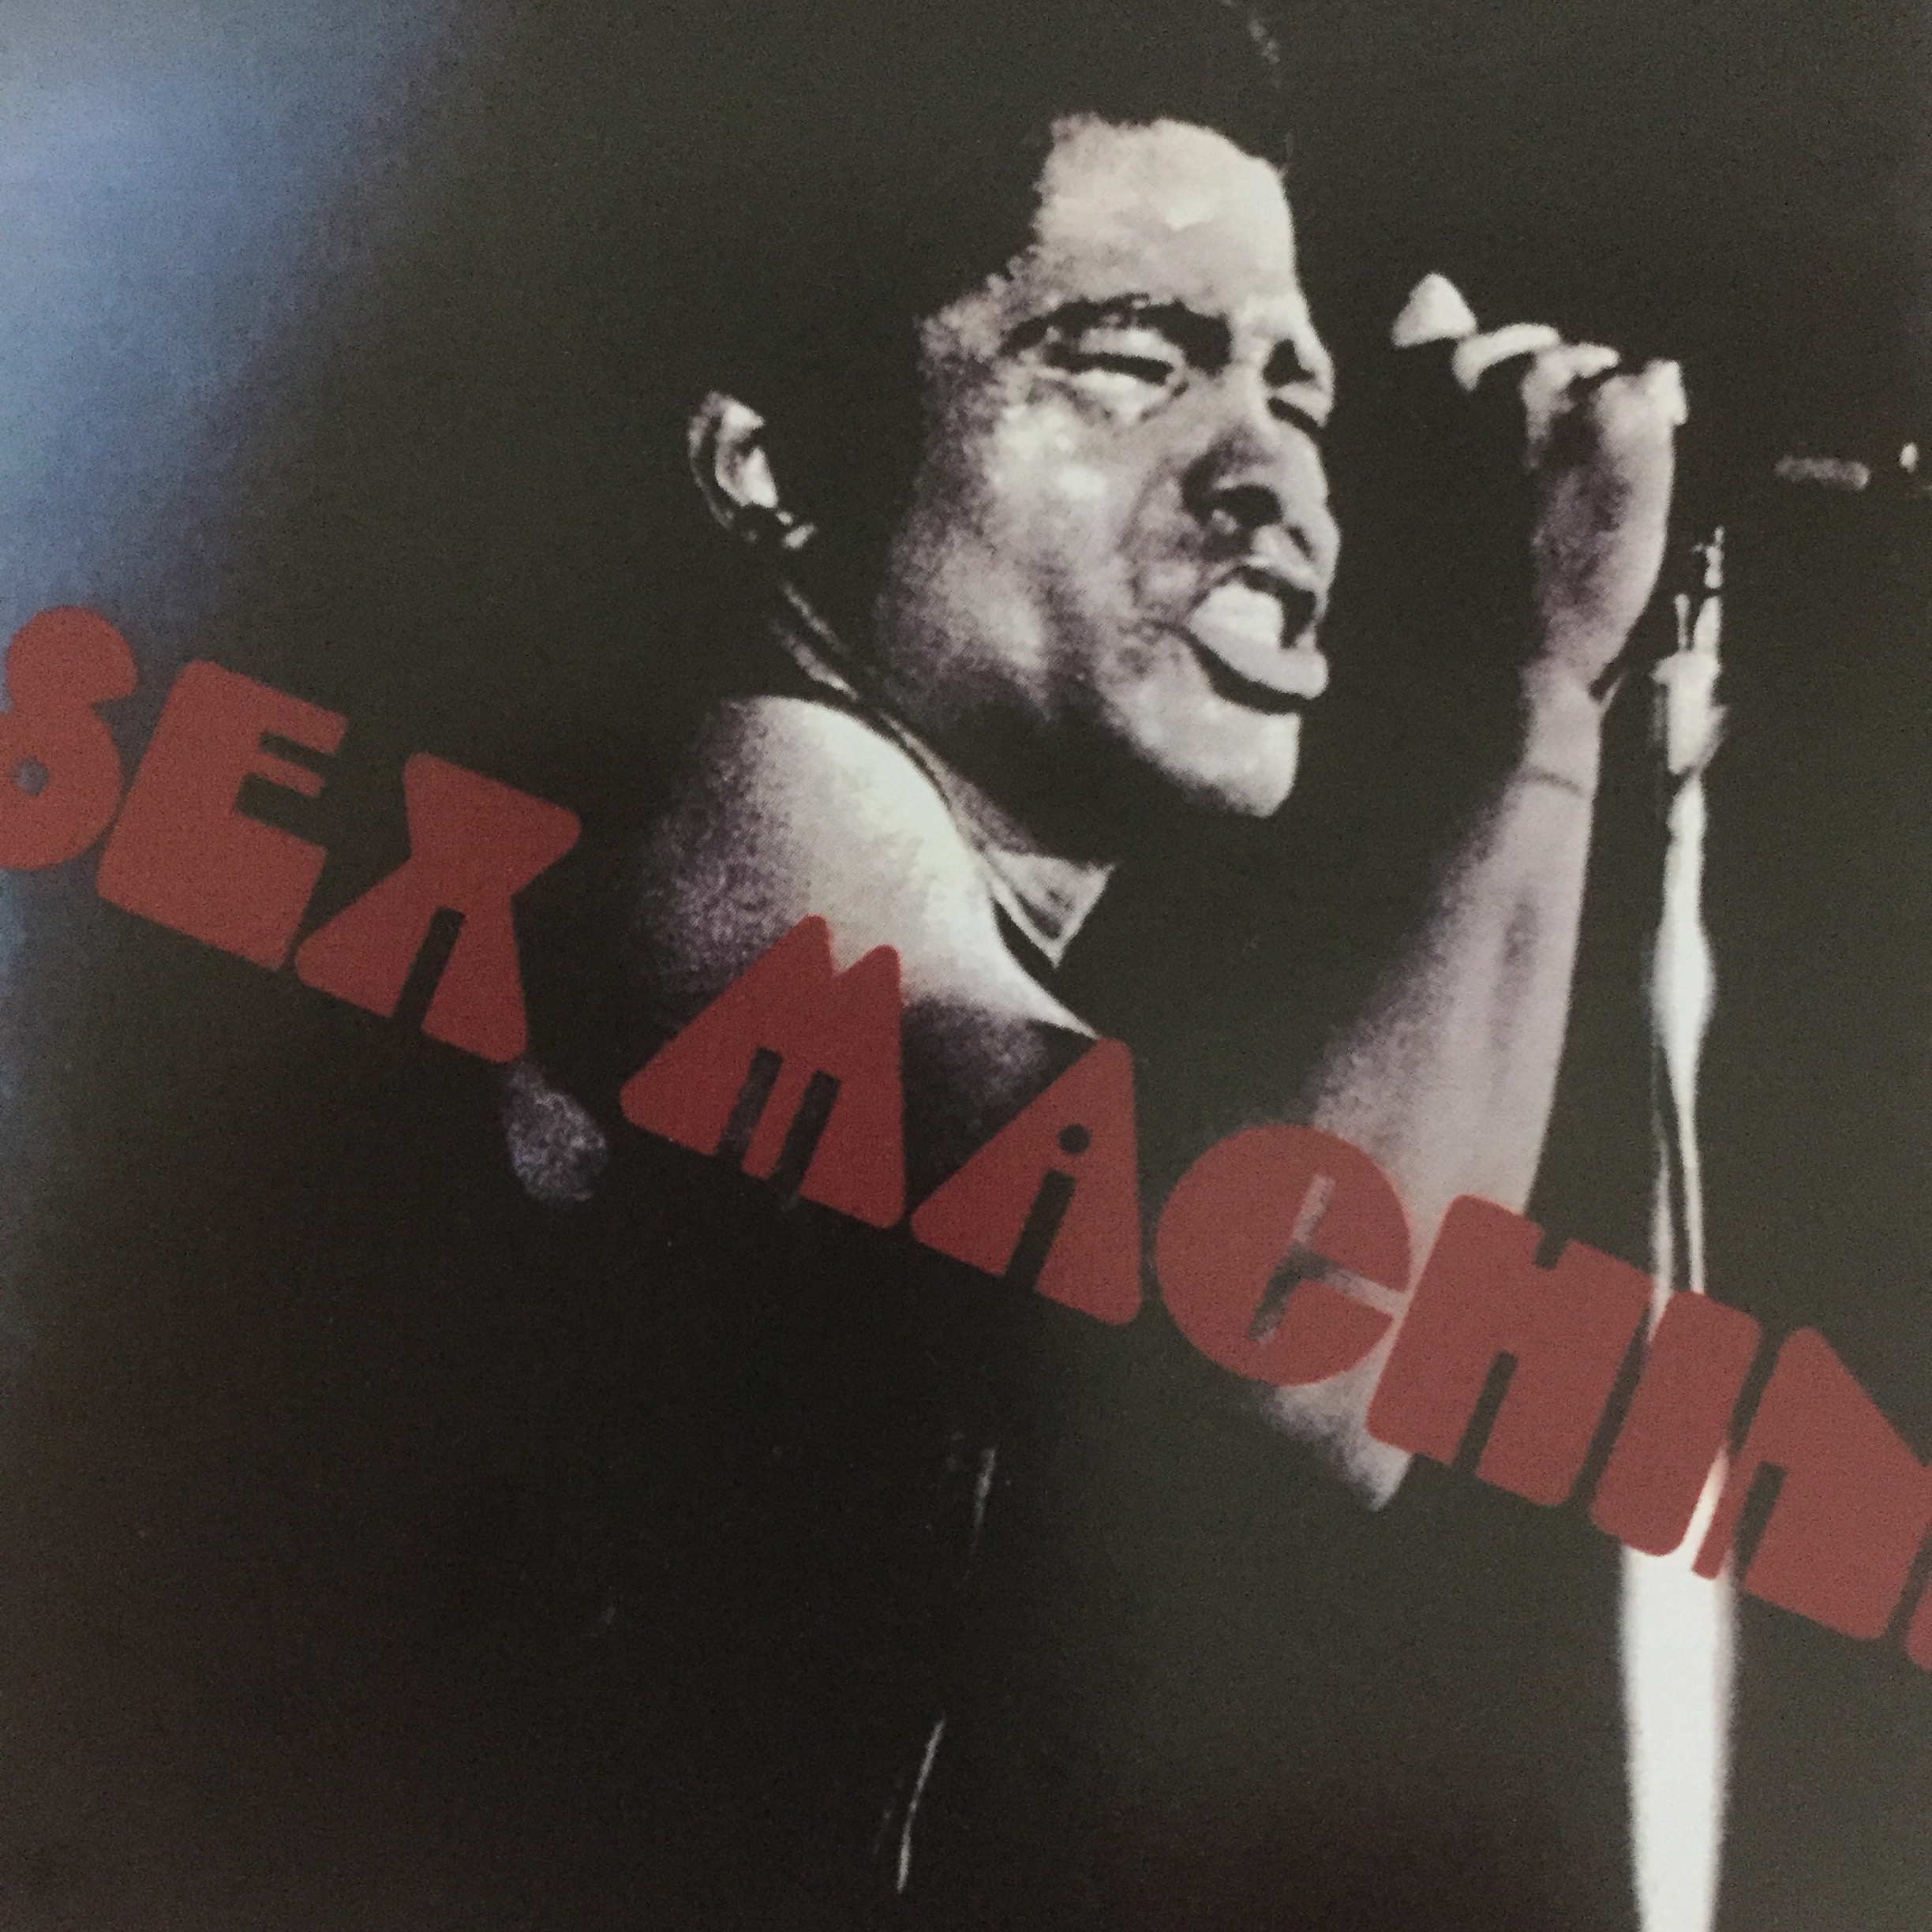 JAMES BROWN 「GET UP I FEEL BEING A SEX MACHINE」